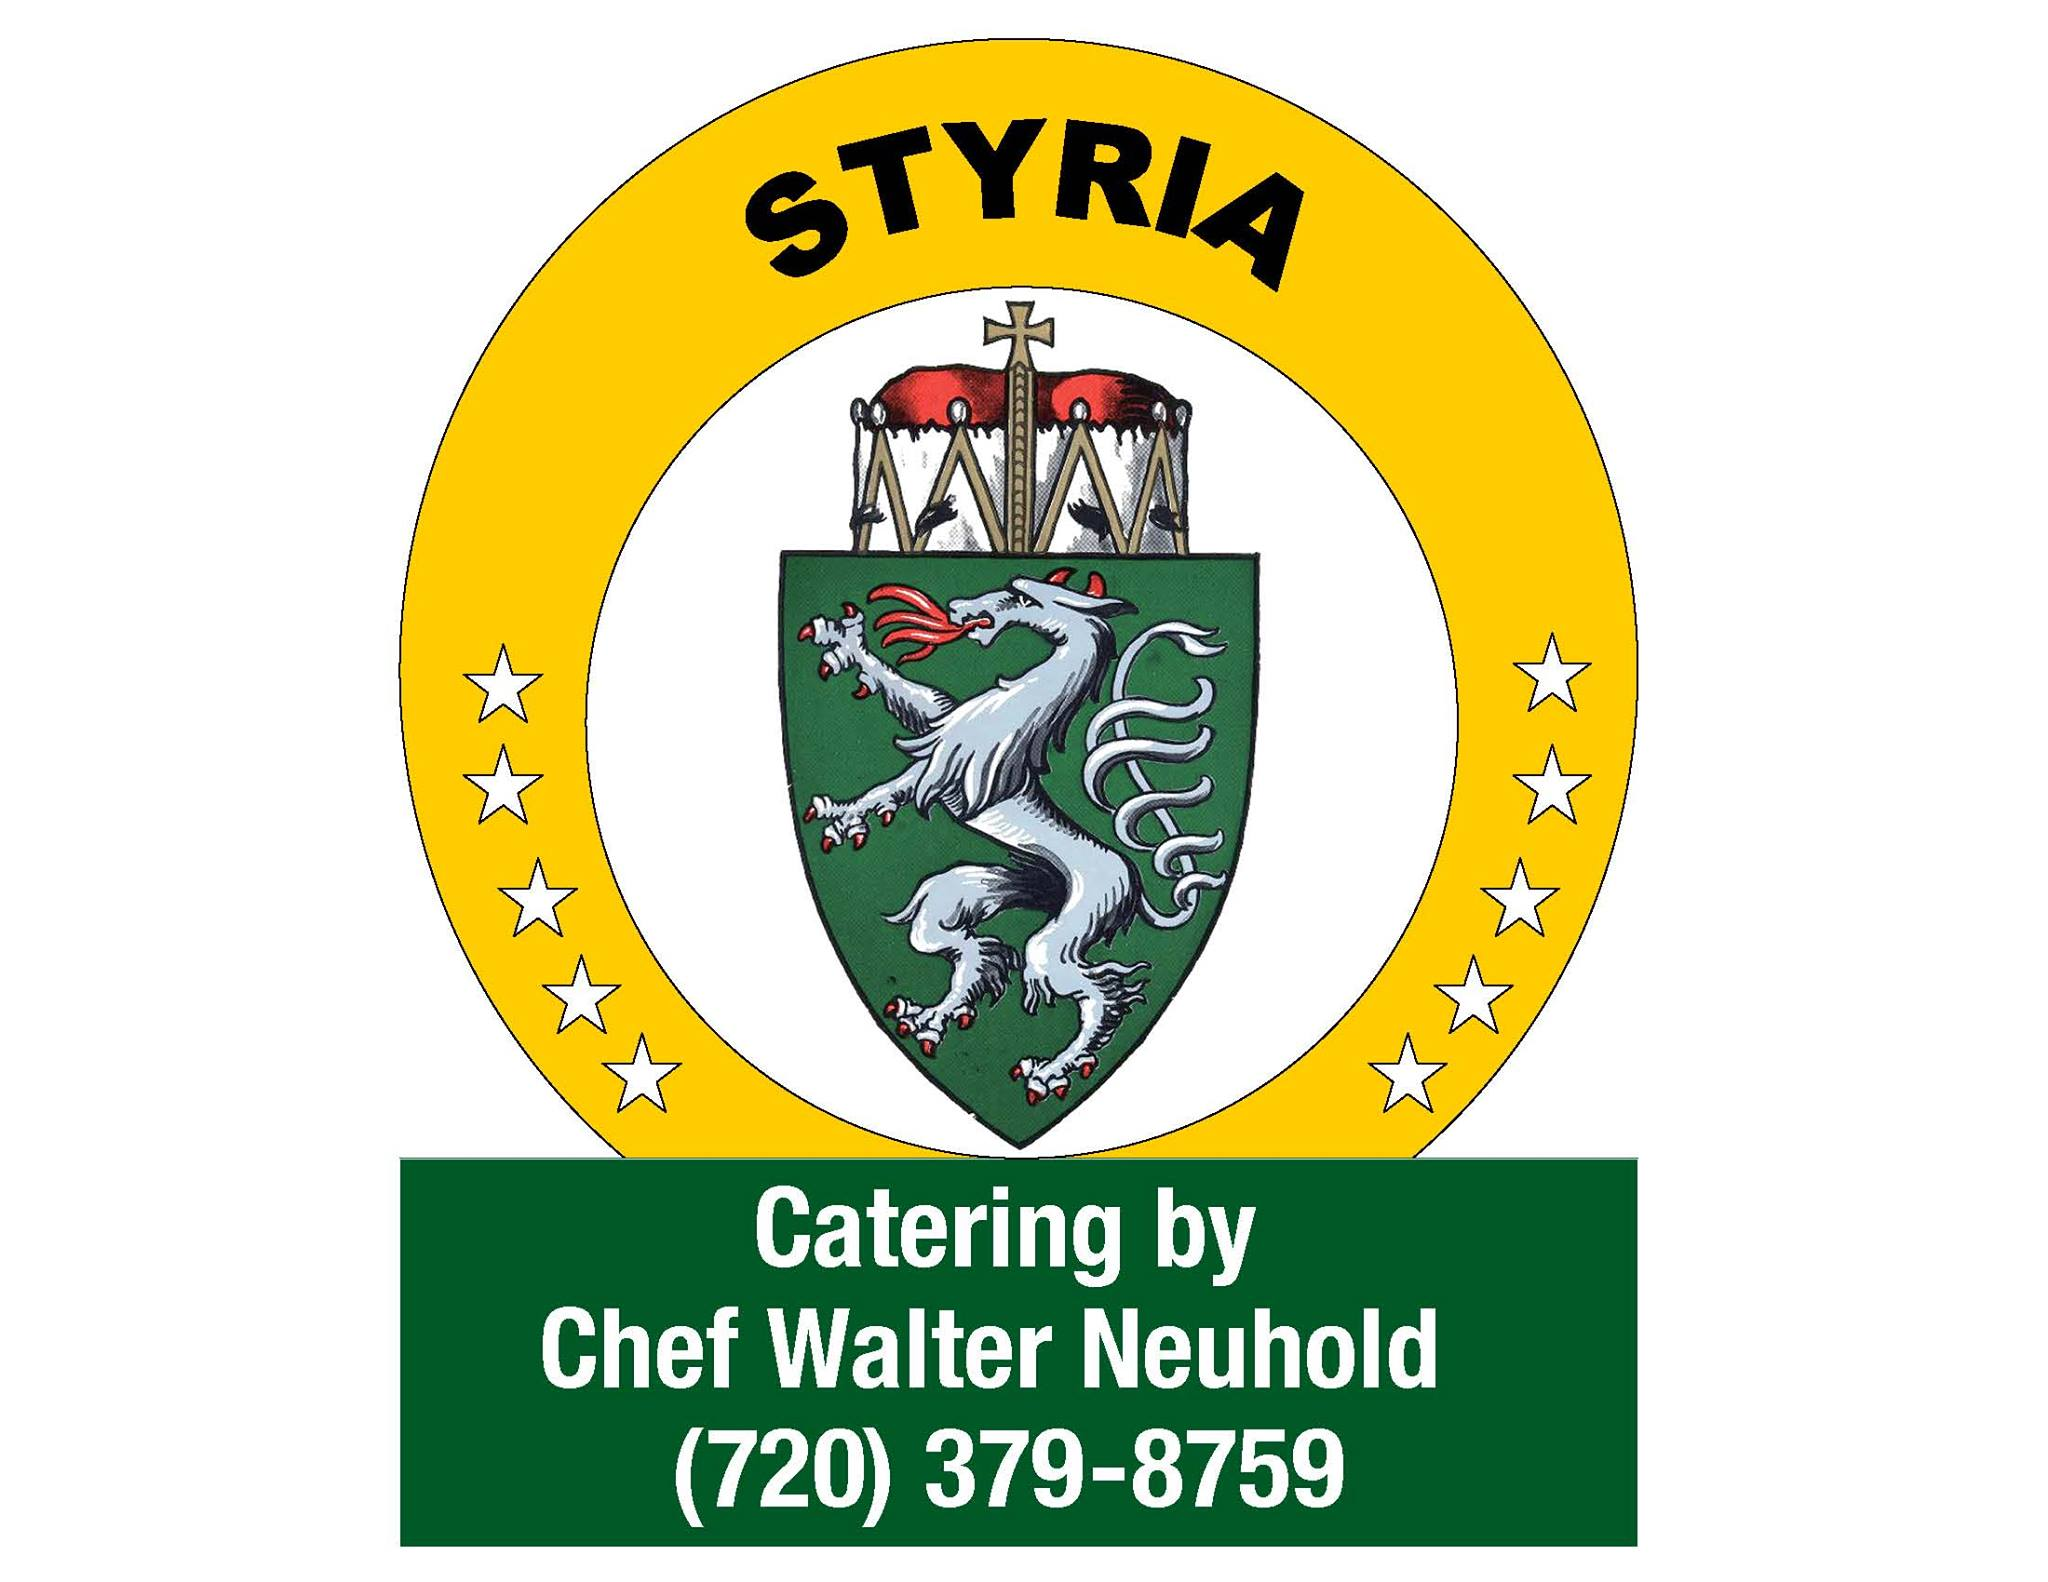 Styria Catering logo